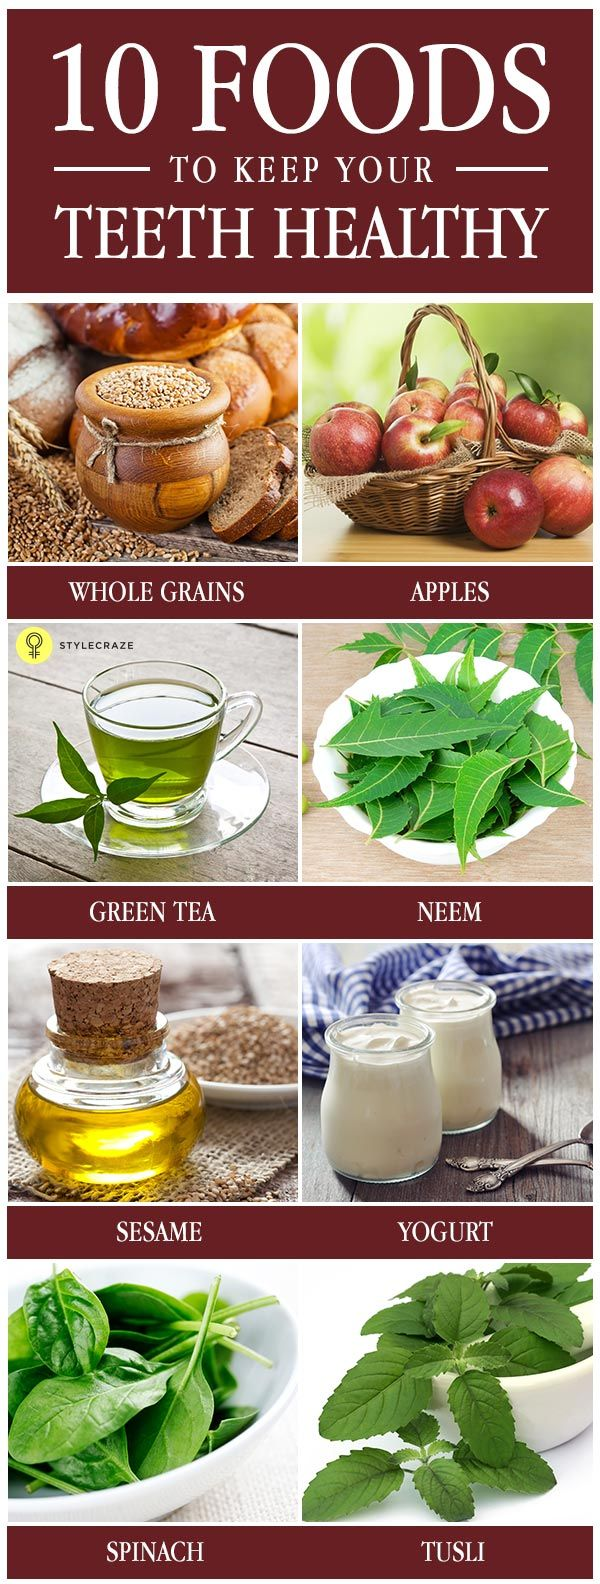 Smart and #healthyfood also helps to keep teeth healthy. So here are the top 10 healthy food for your teeth.